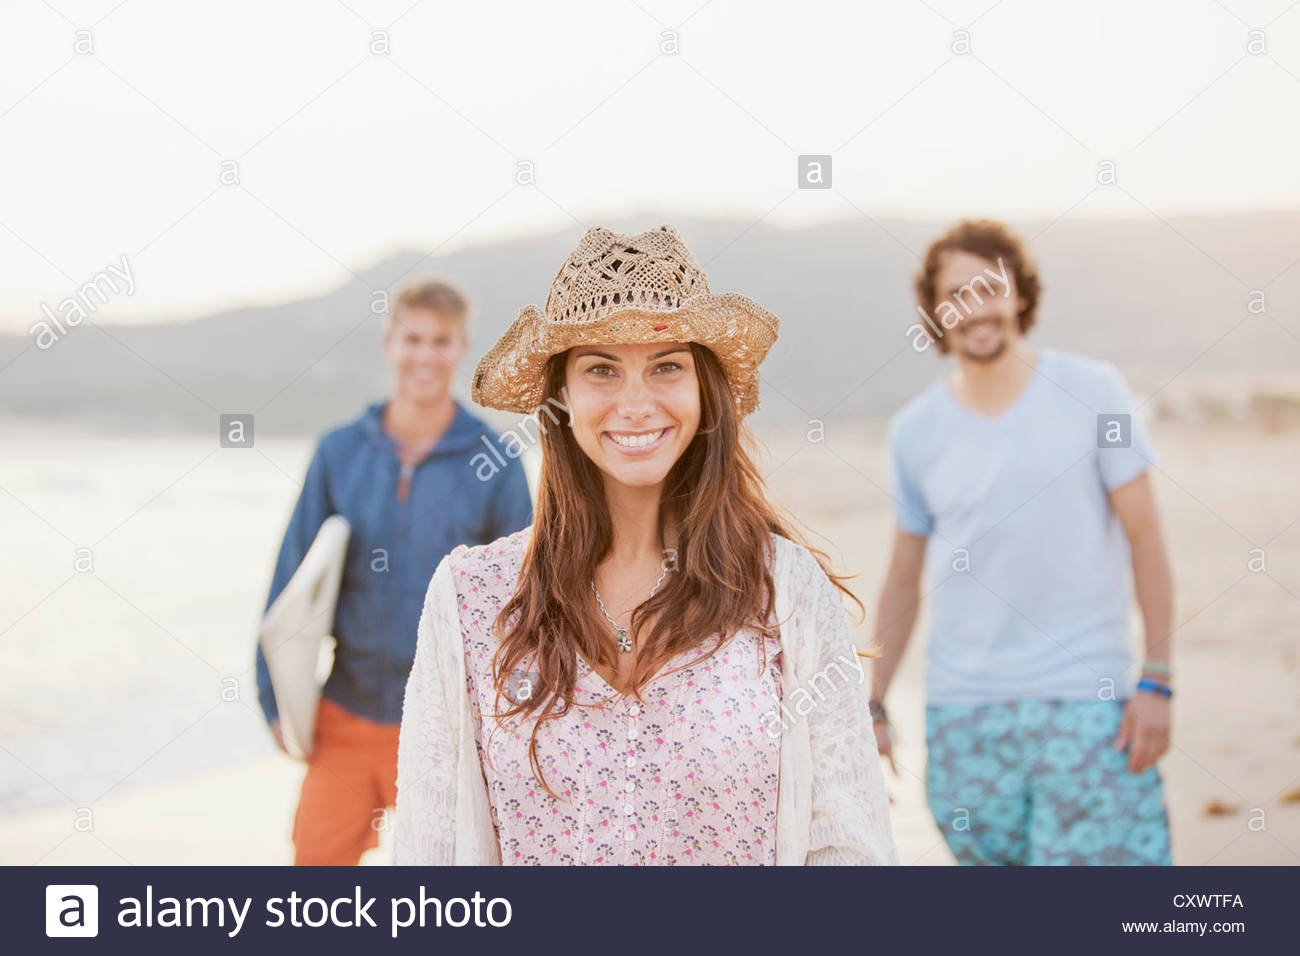 Friends walking together on beach - Stock Image